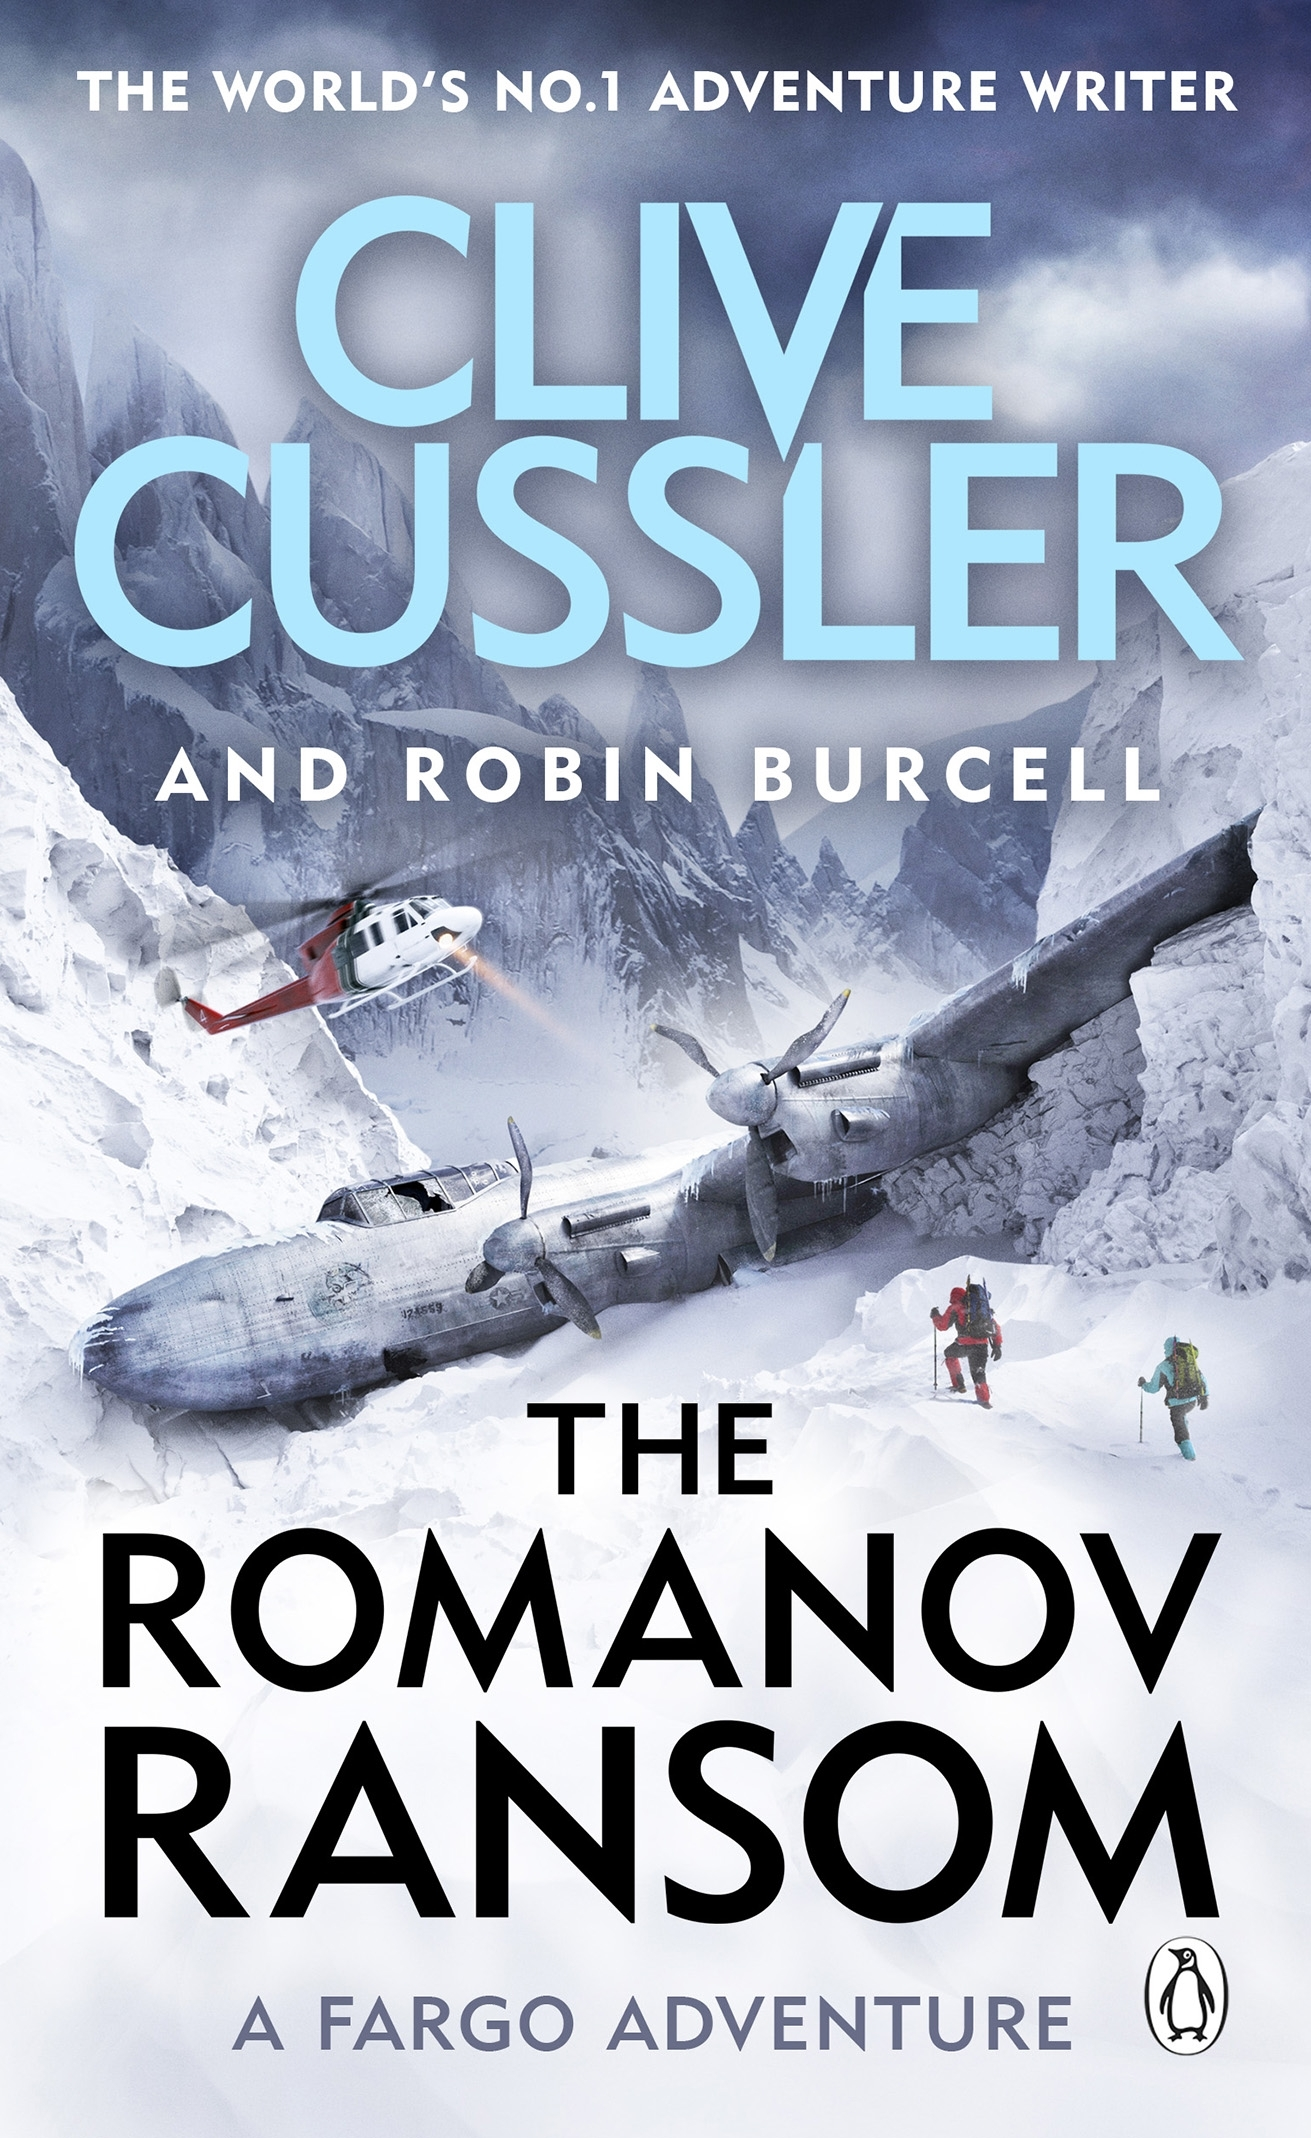 The Romanov Ransom: Fargo Adventures #9. By Clive Cussler ...